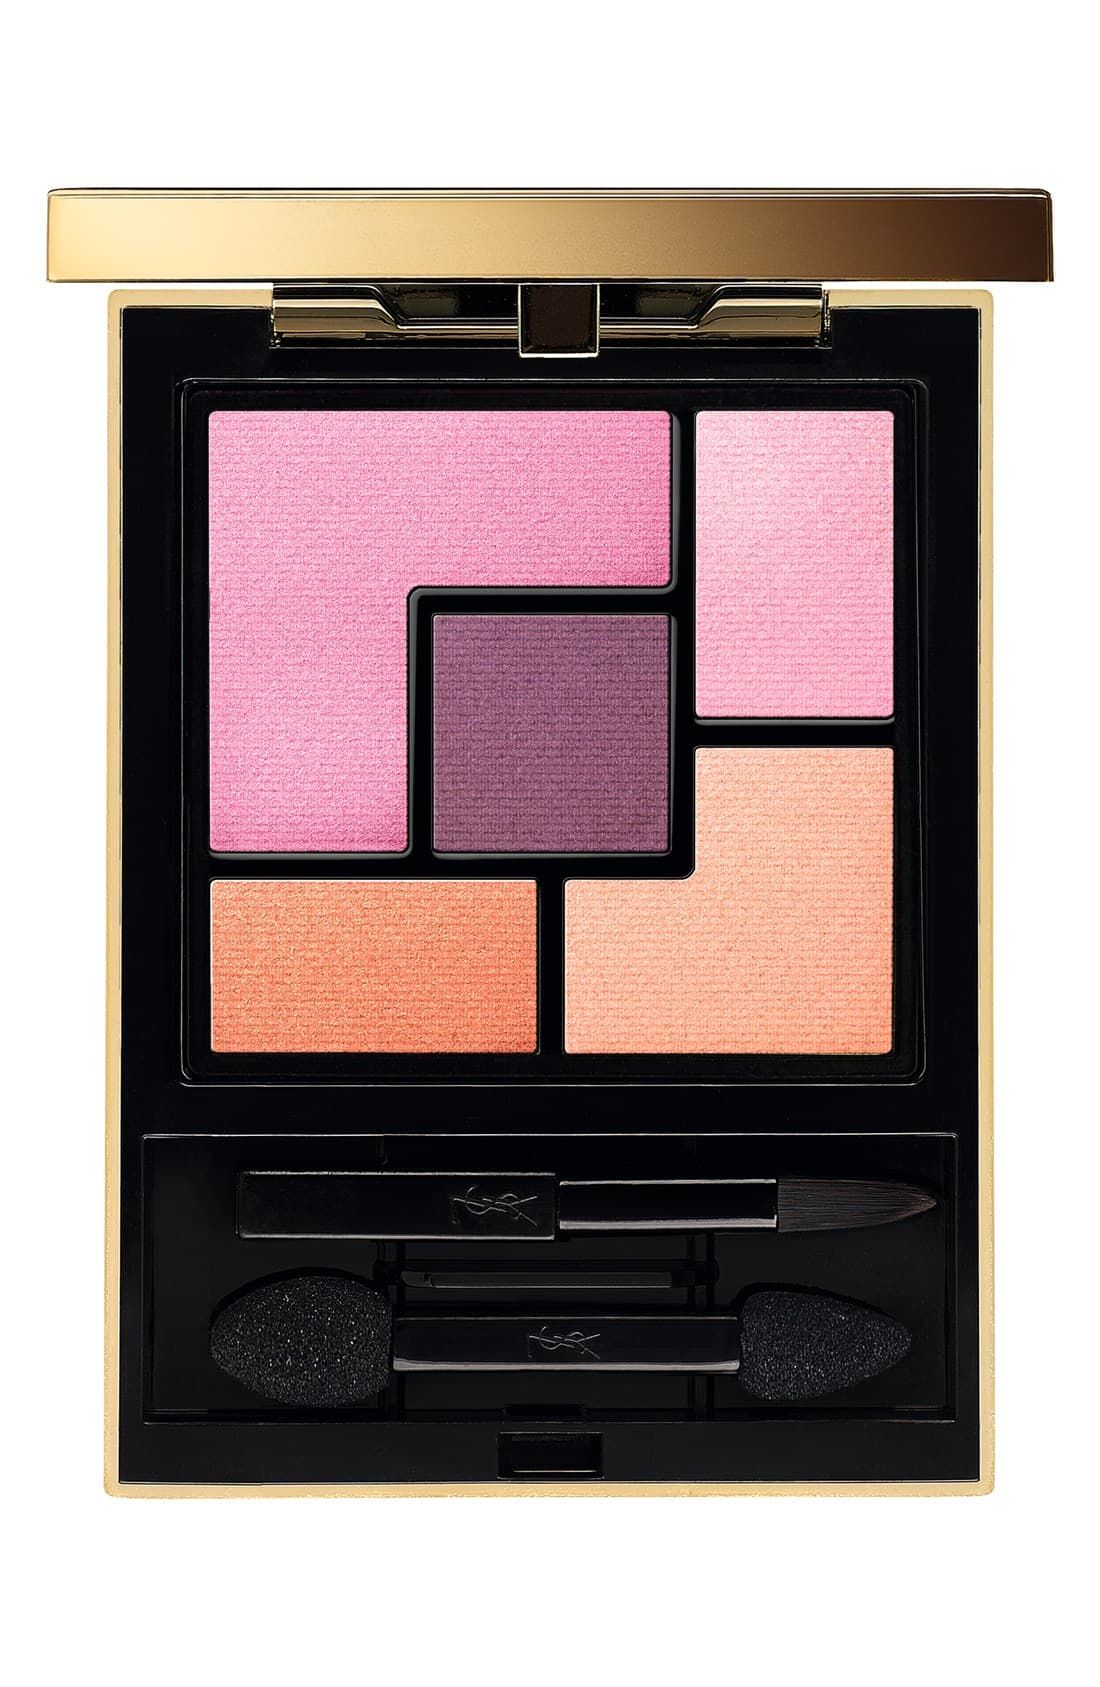 Photo of Yves Saint Laurent 5 Color Couture Palette | Nordstrom